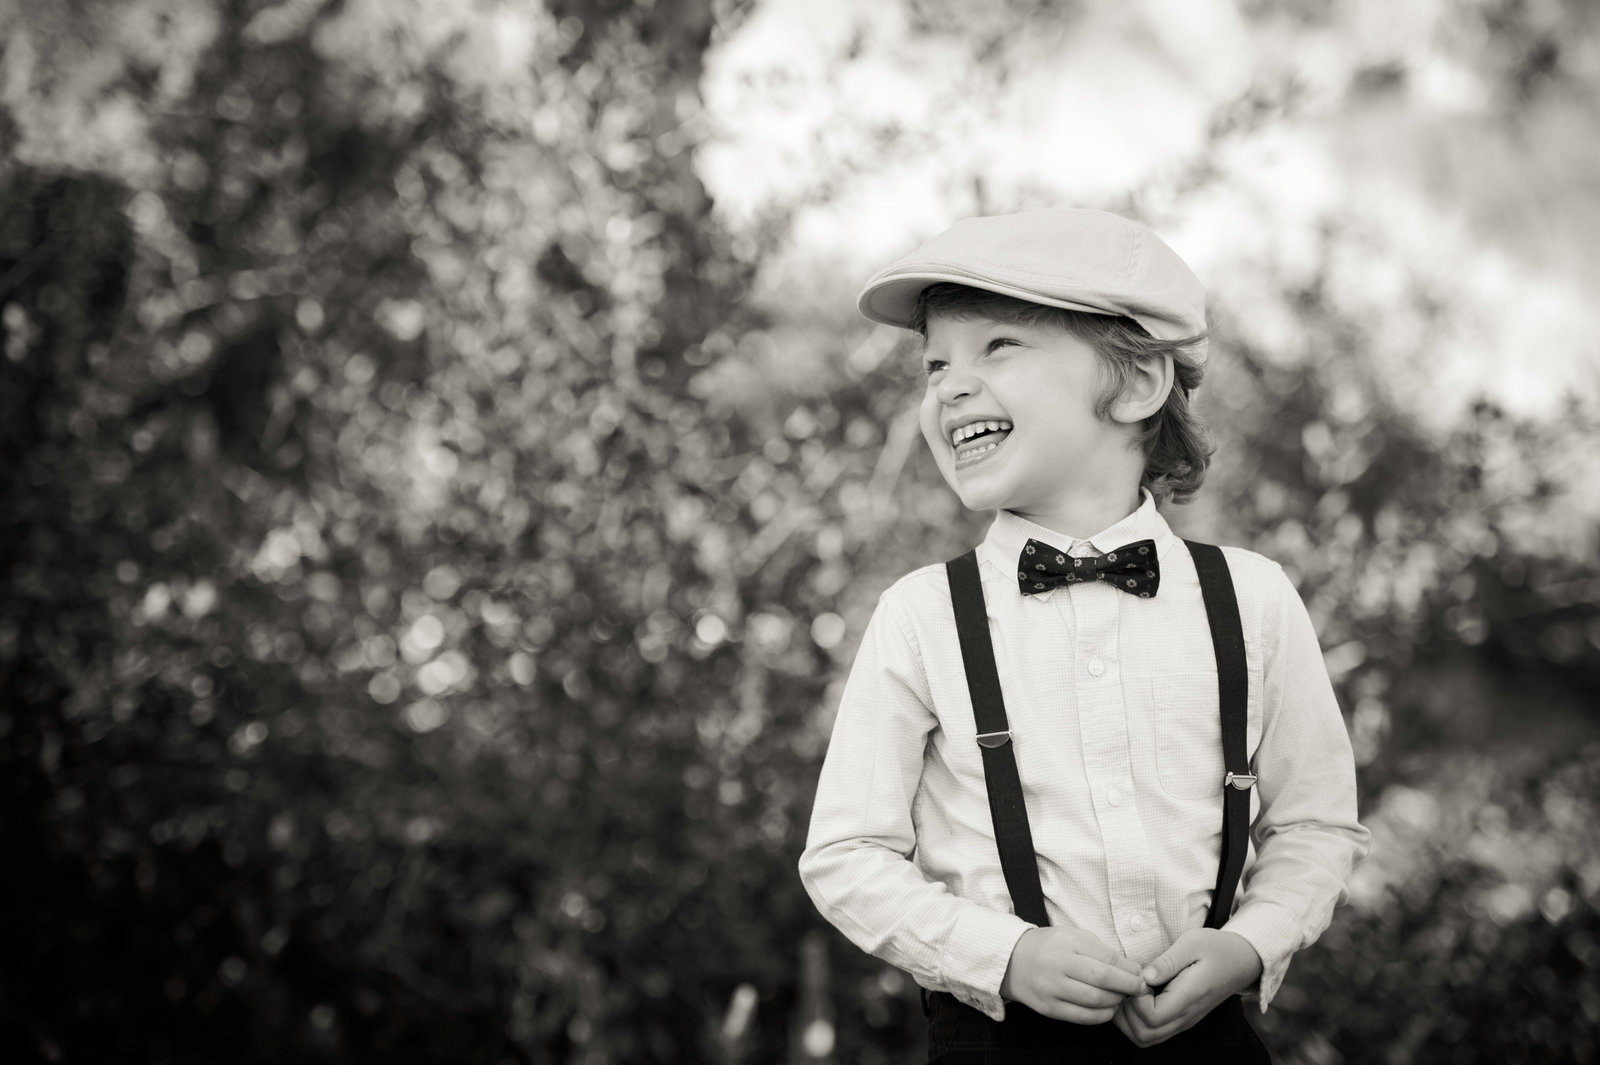 black and white photograph of laughing boy with suspenders and bow tie